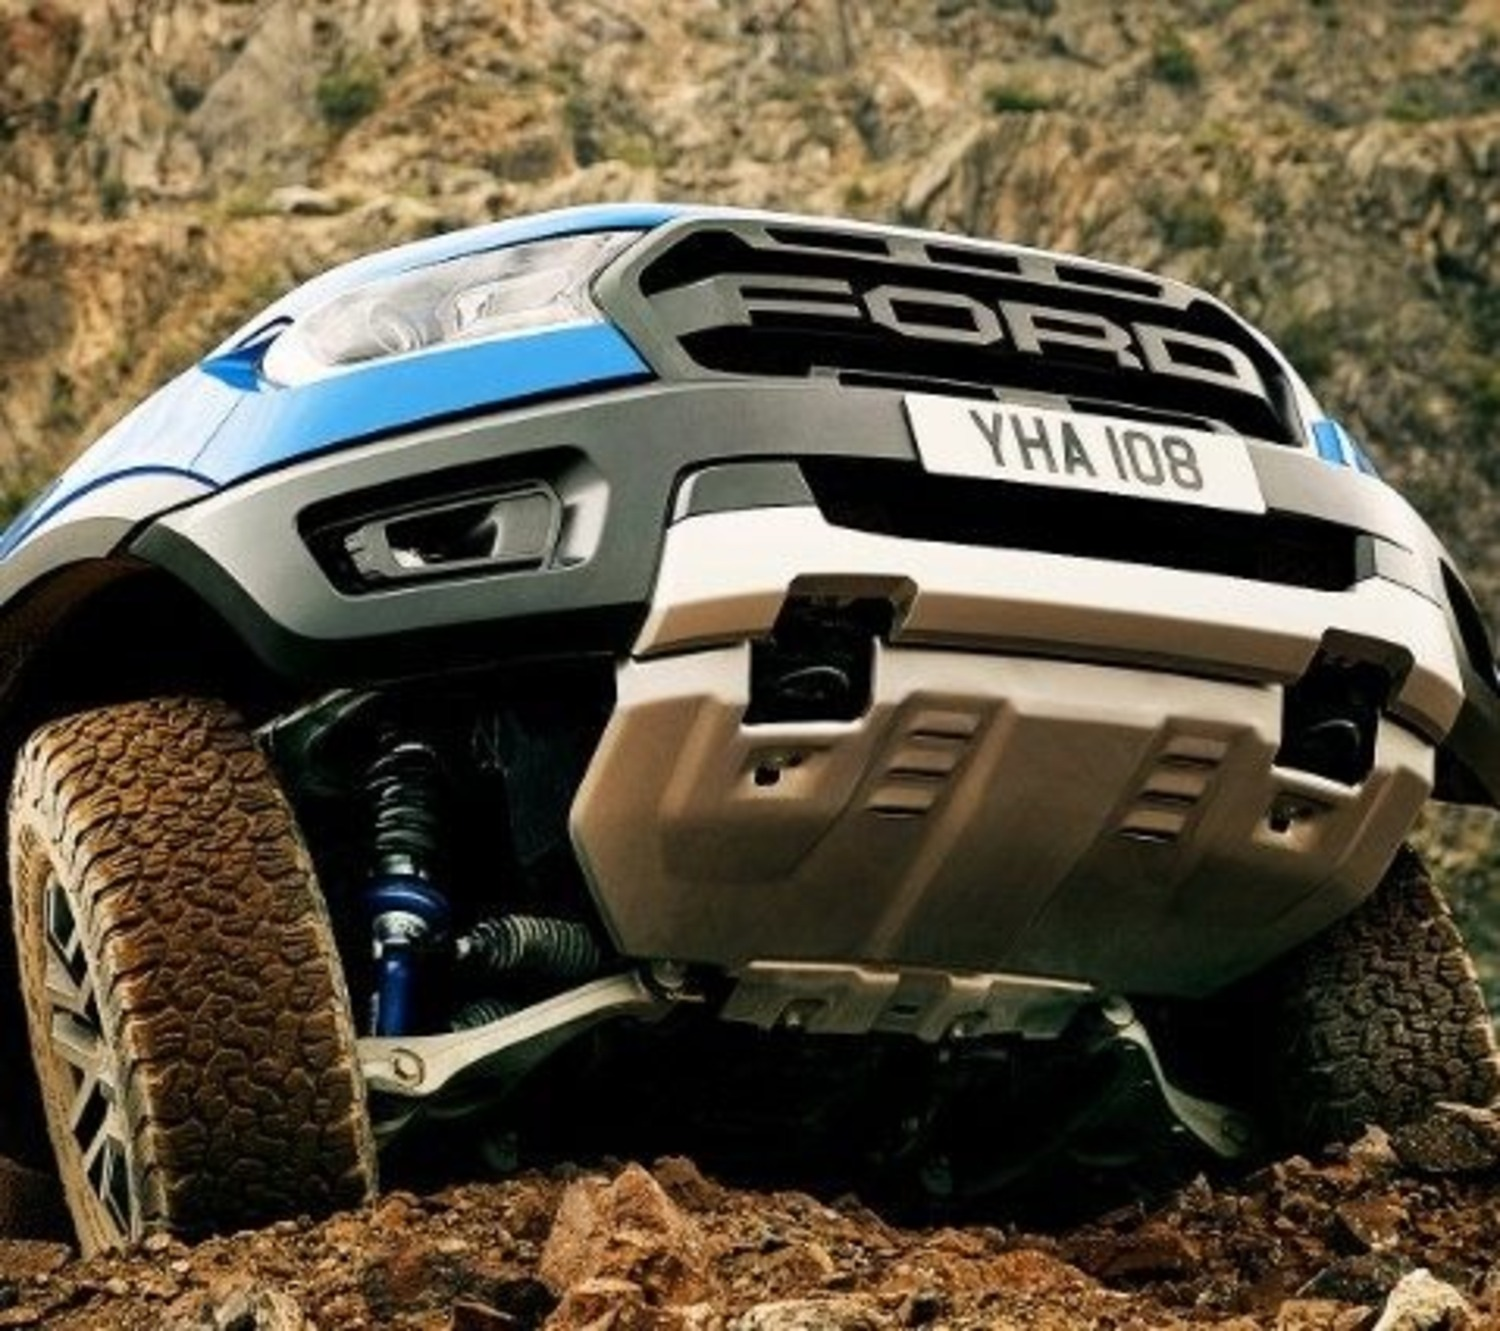 Nuovo Ranger Raptor: il super pick-up Ford anche in Italia [video]